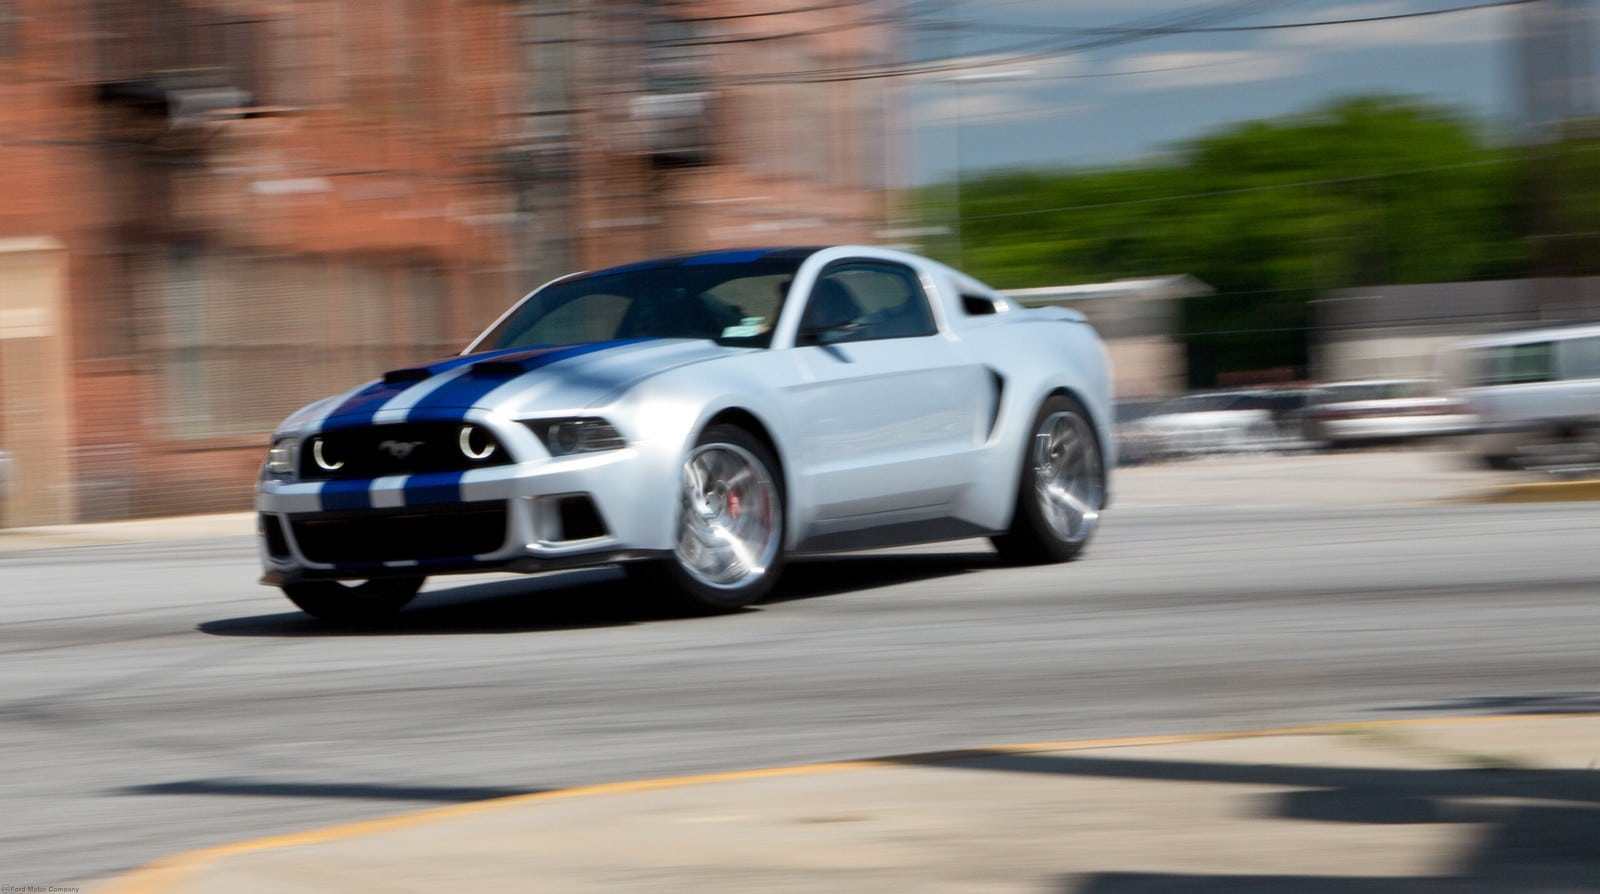 La Ford Mustang sera la star du film Need for Speed